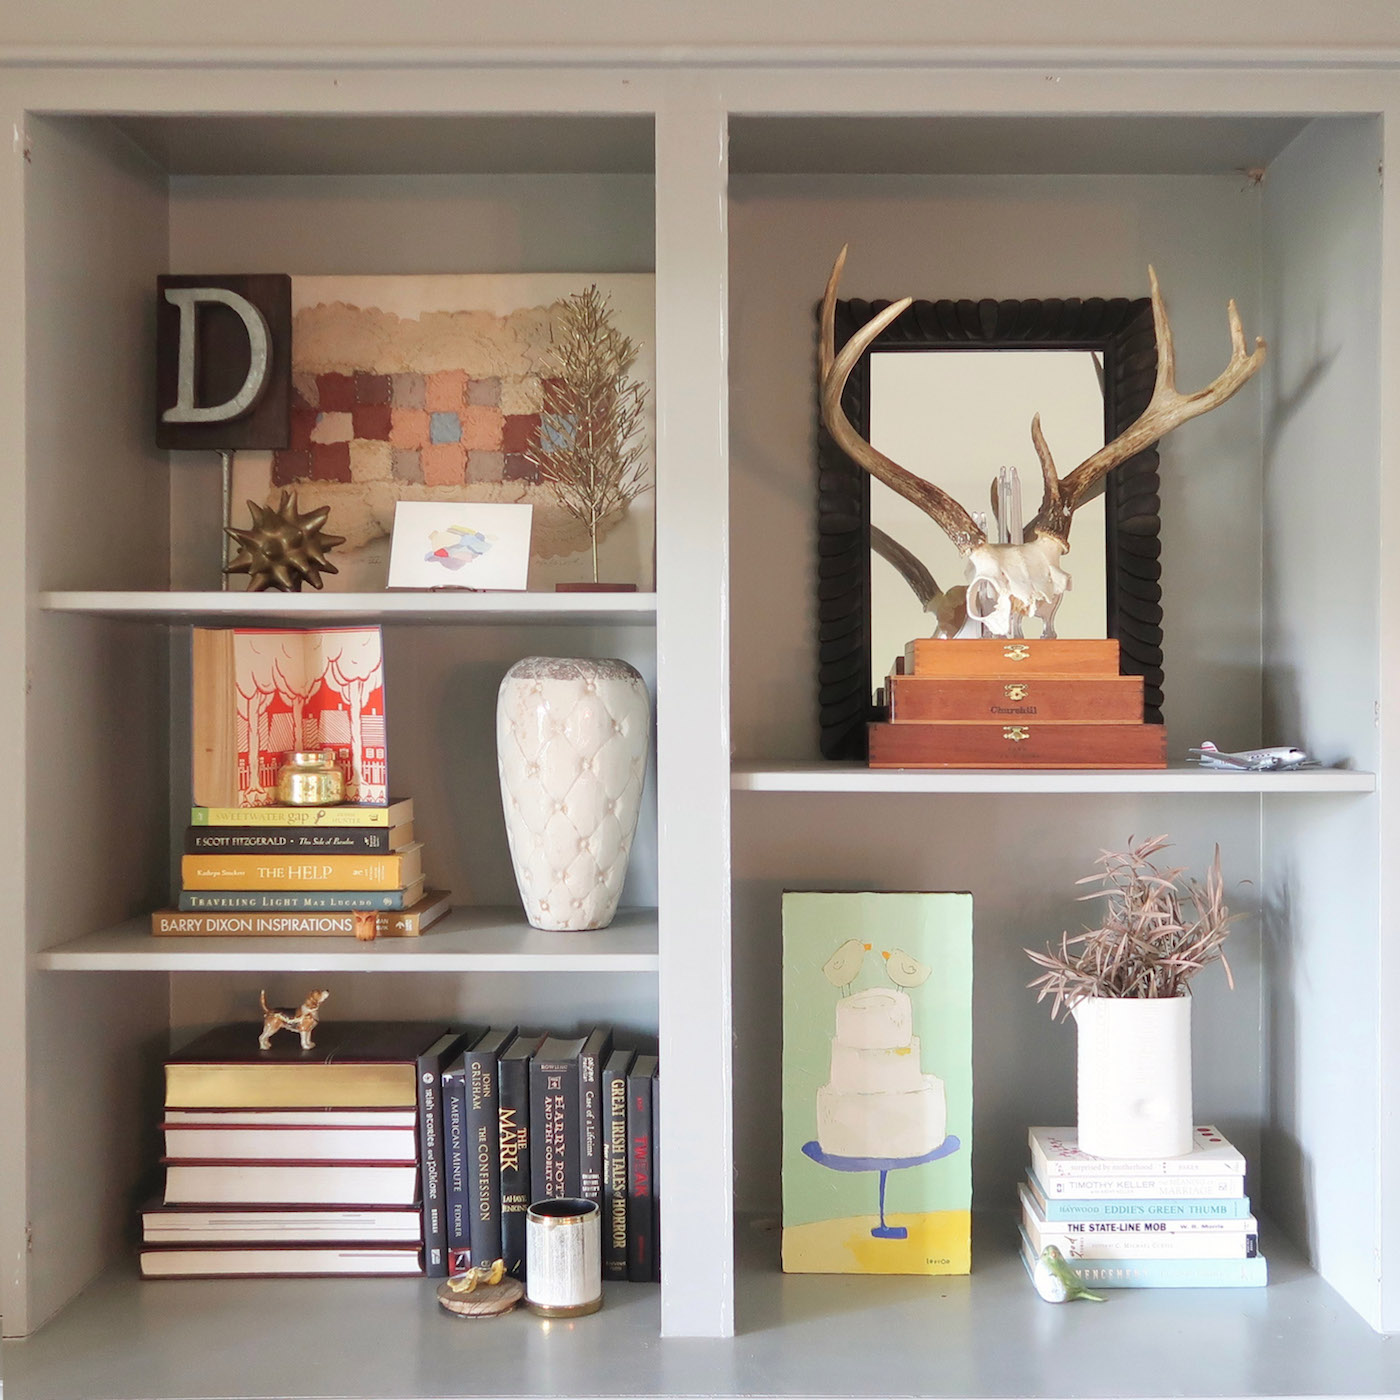 The Interior Design Mantras I've Picked Up Over the Years